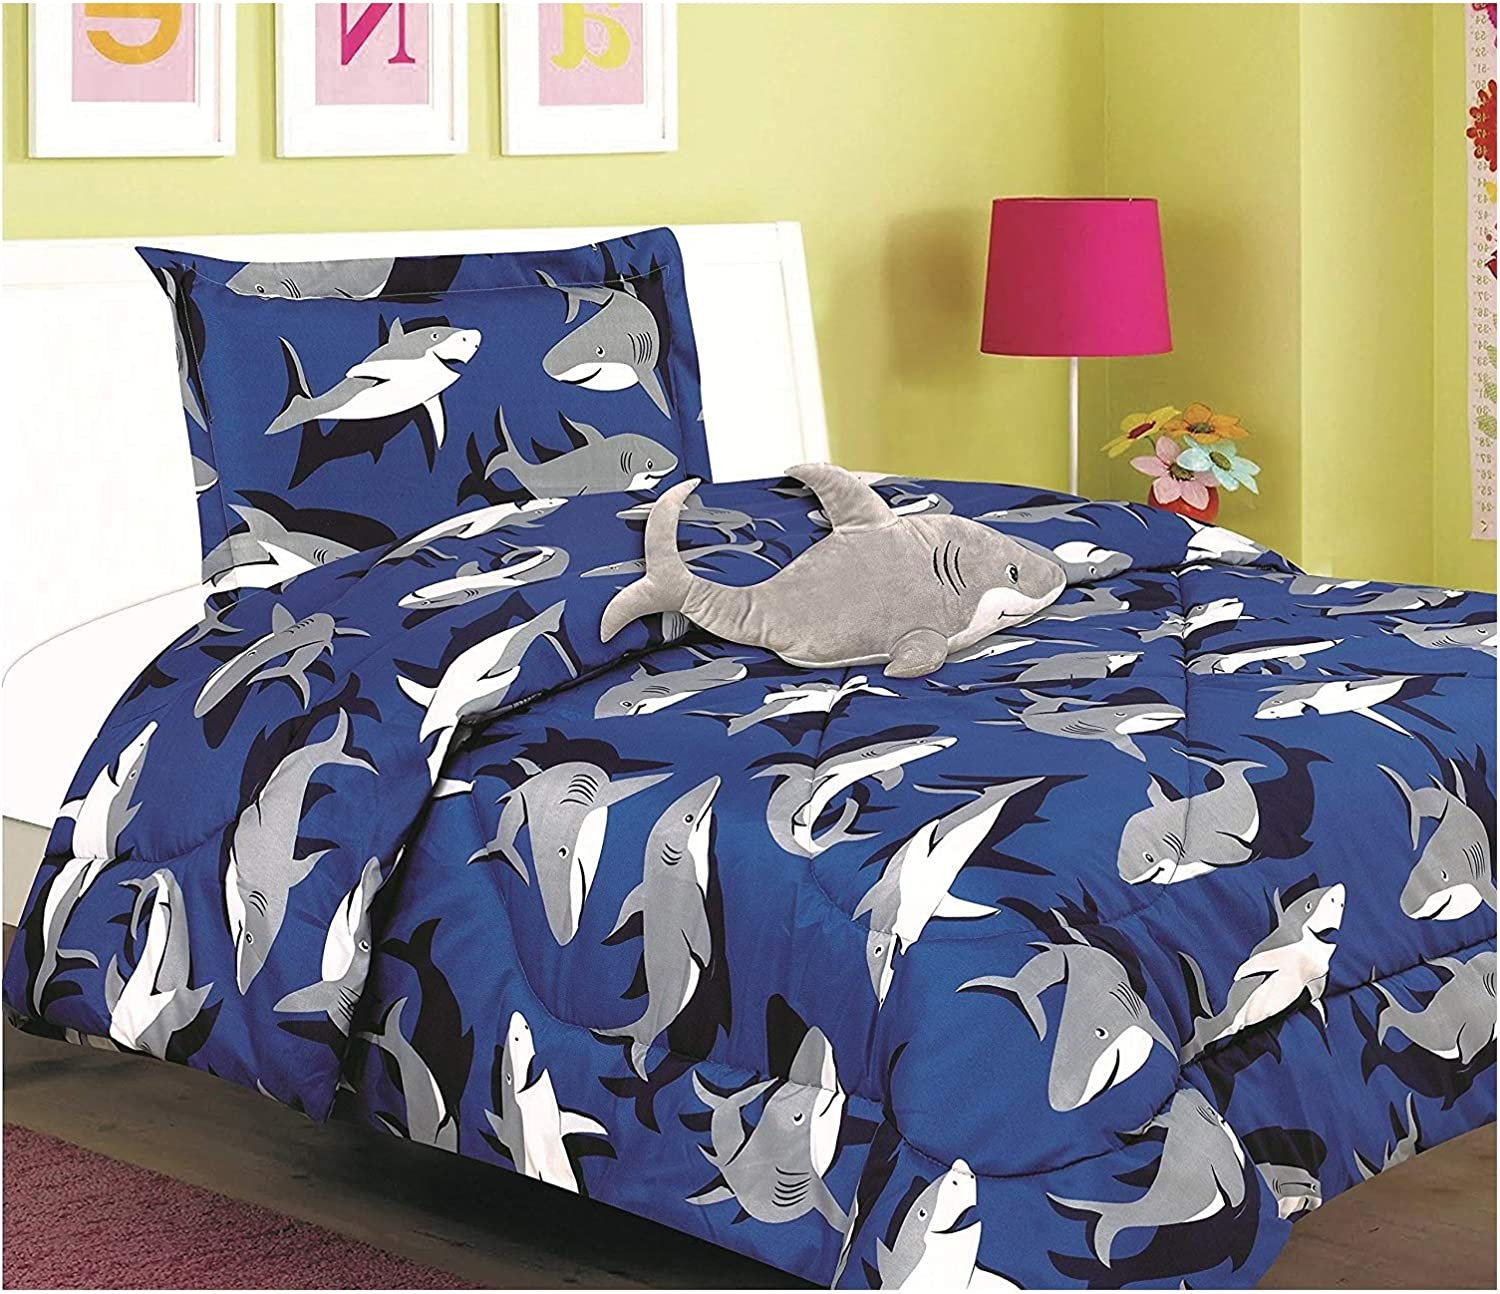 All American Collection New 3pc Childrens Comforter Set with Furry Toy Twin, SHARK